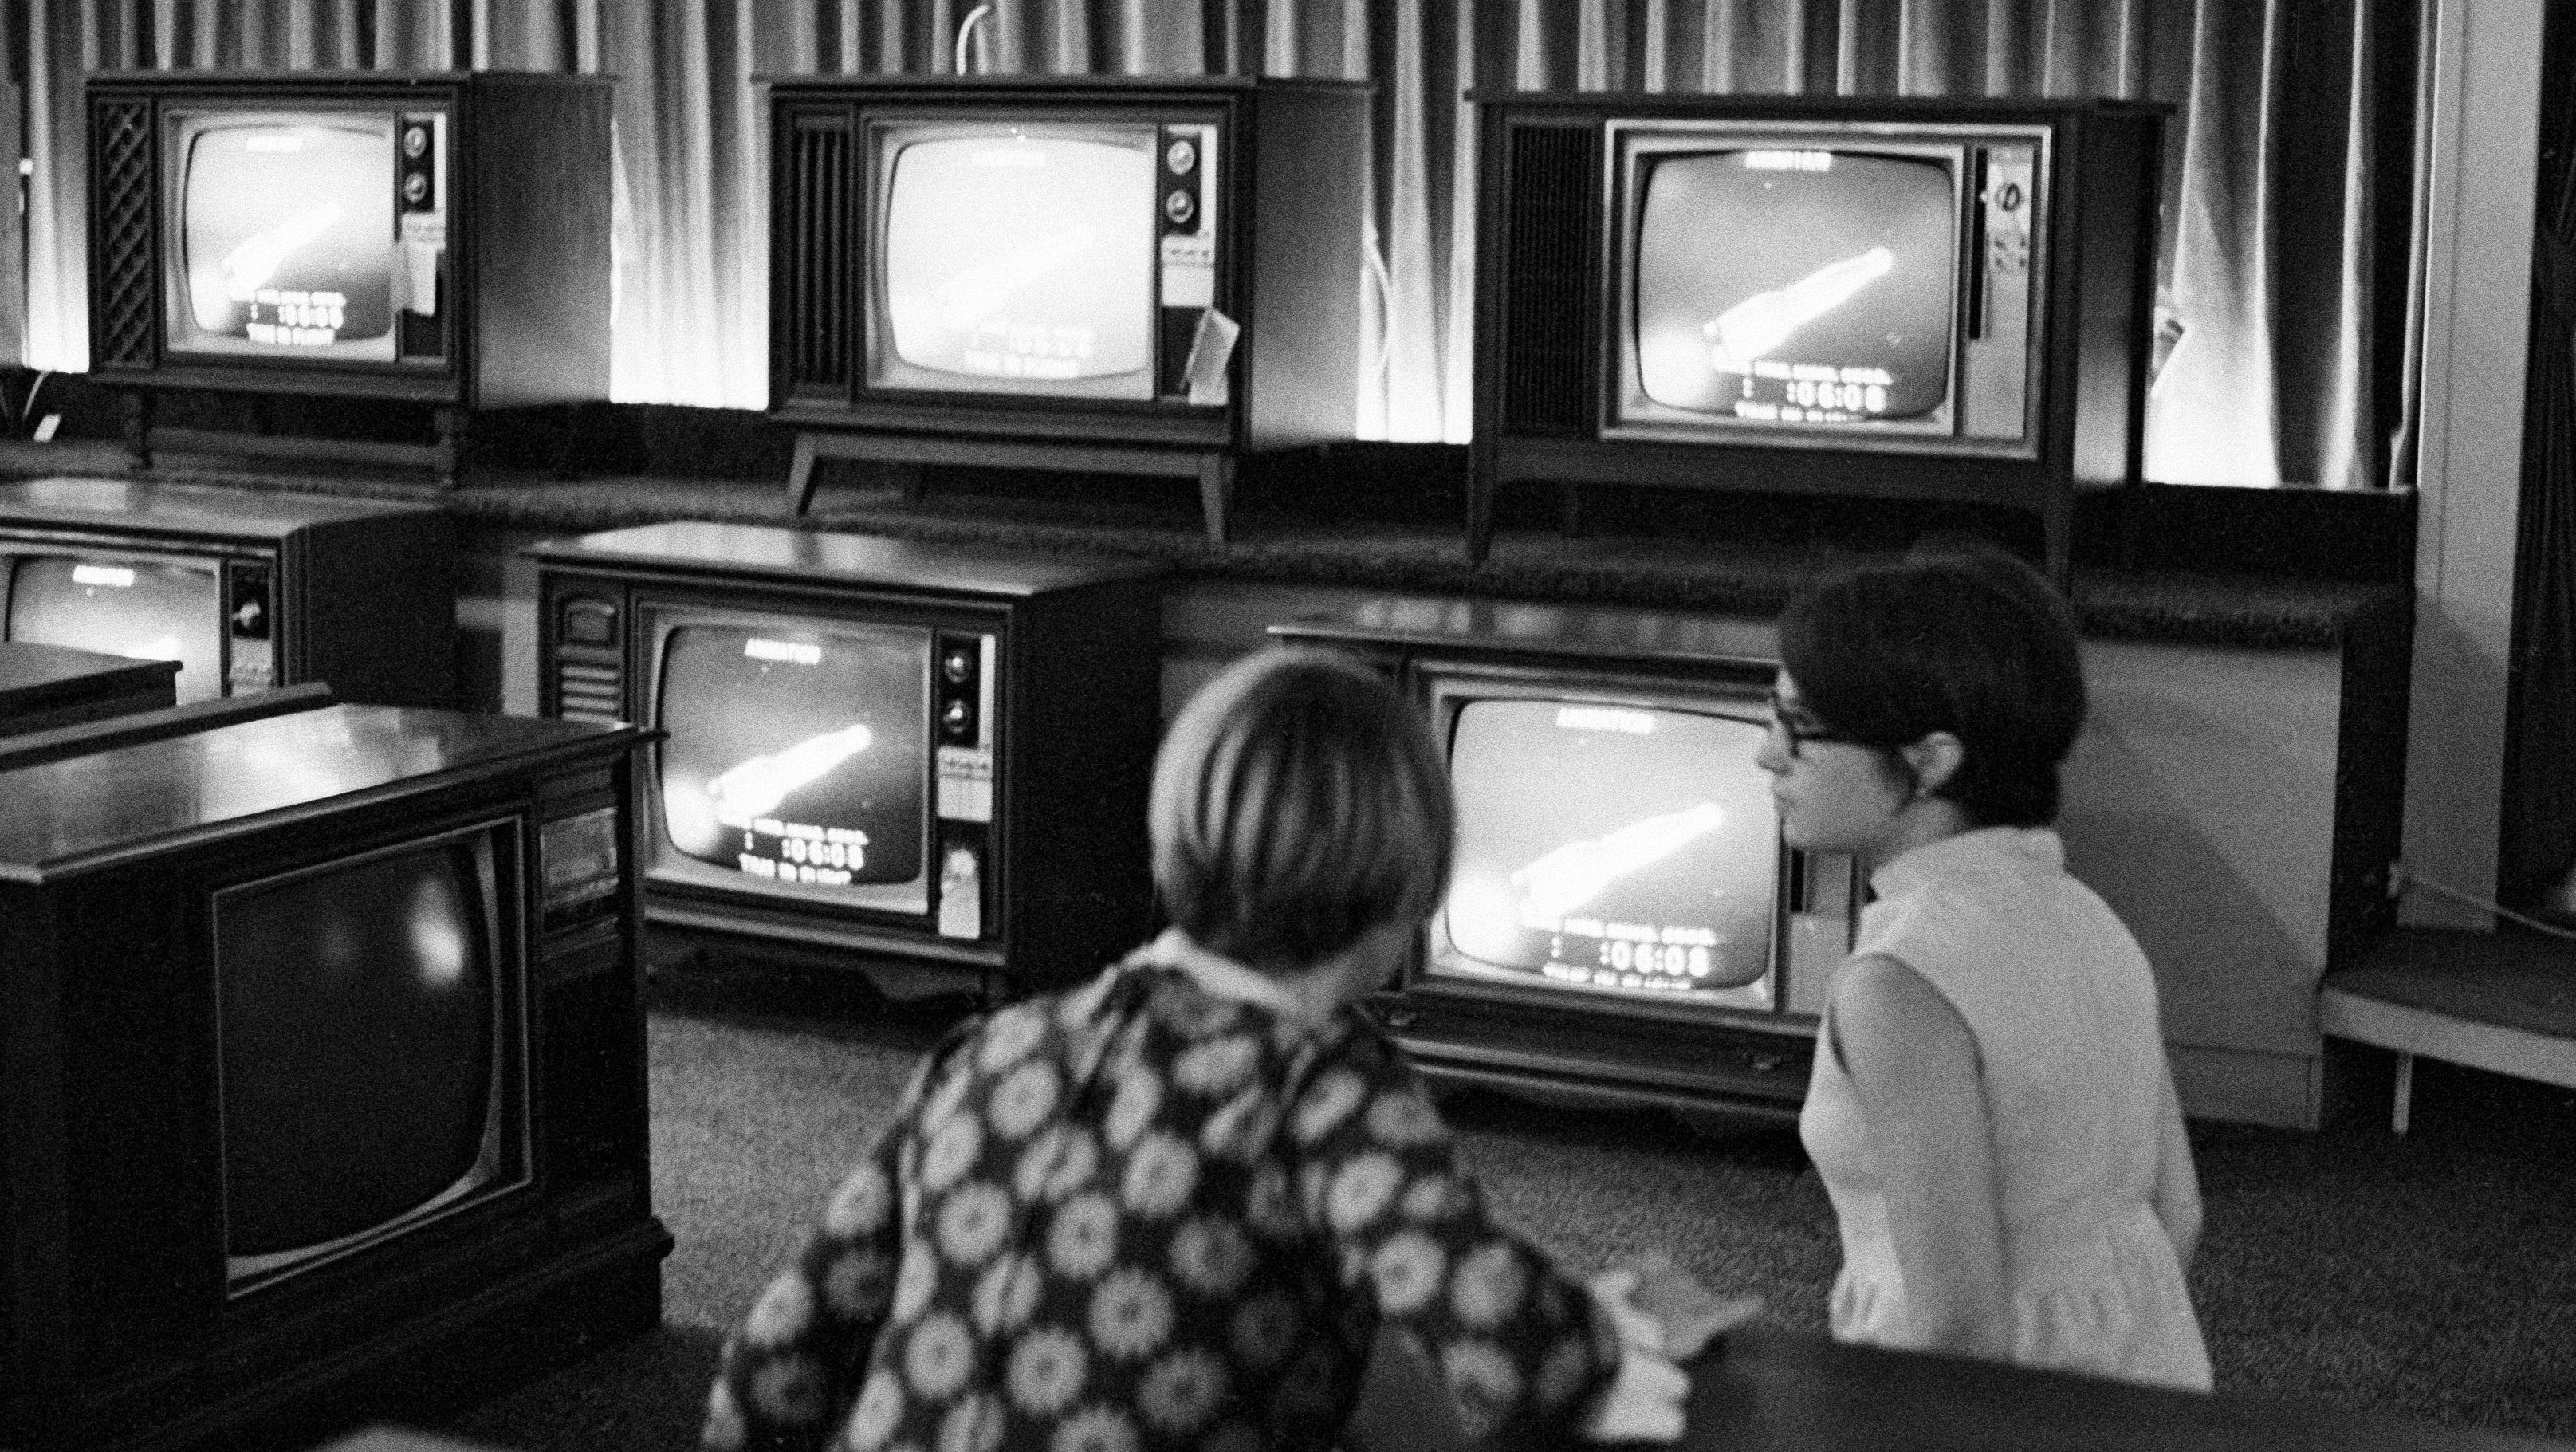 People watch the Apollo 11 Saturn V rocket launch on multiple TV's at a Sears department store in White Plains, N.Y., July 16, 1969. (AP Photo/Ron Frehm)